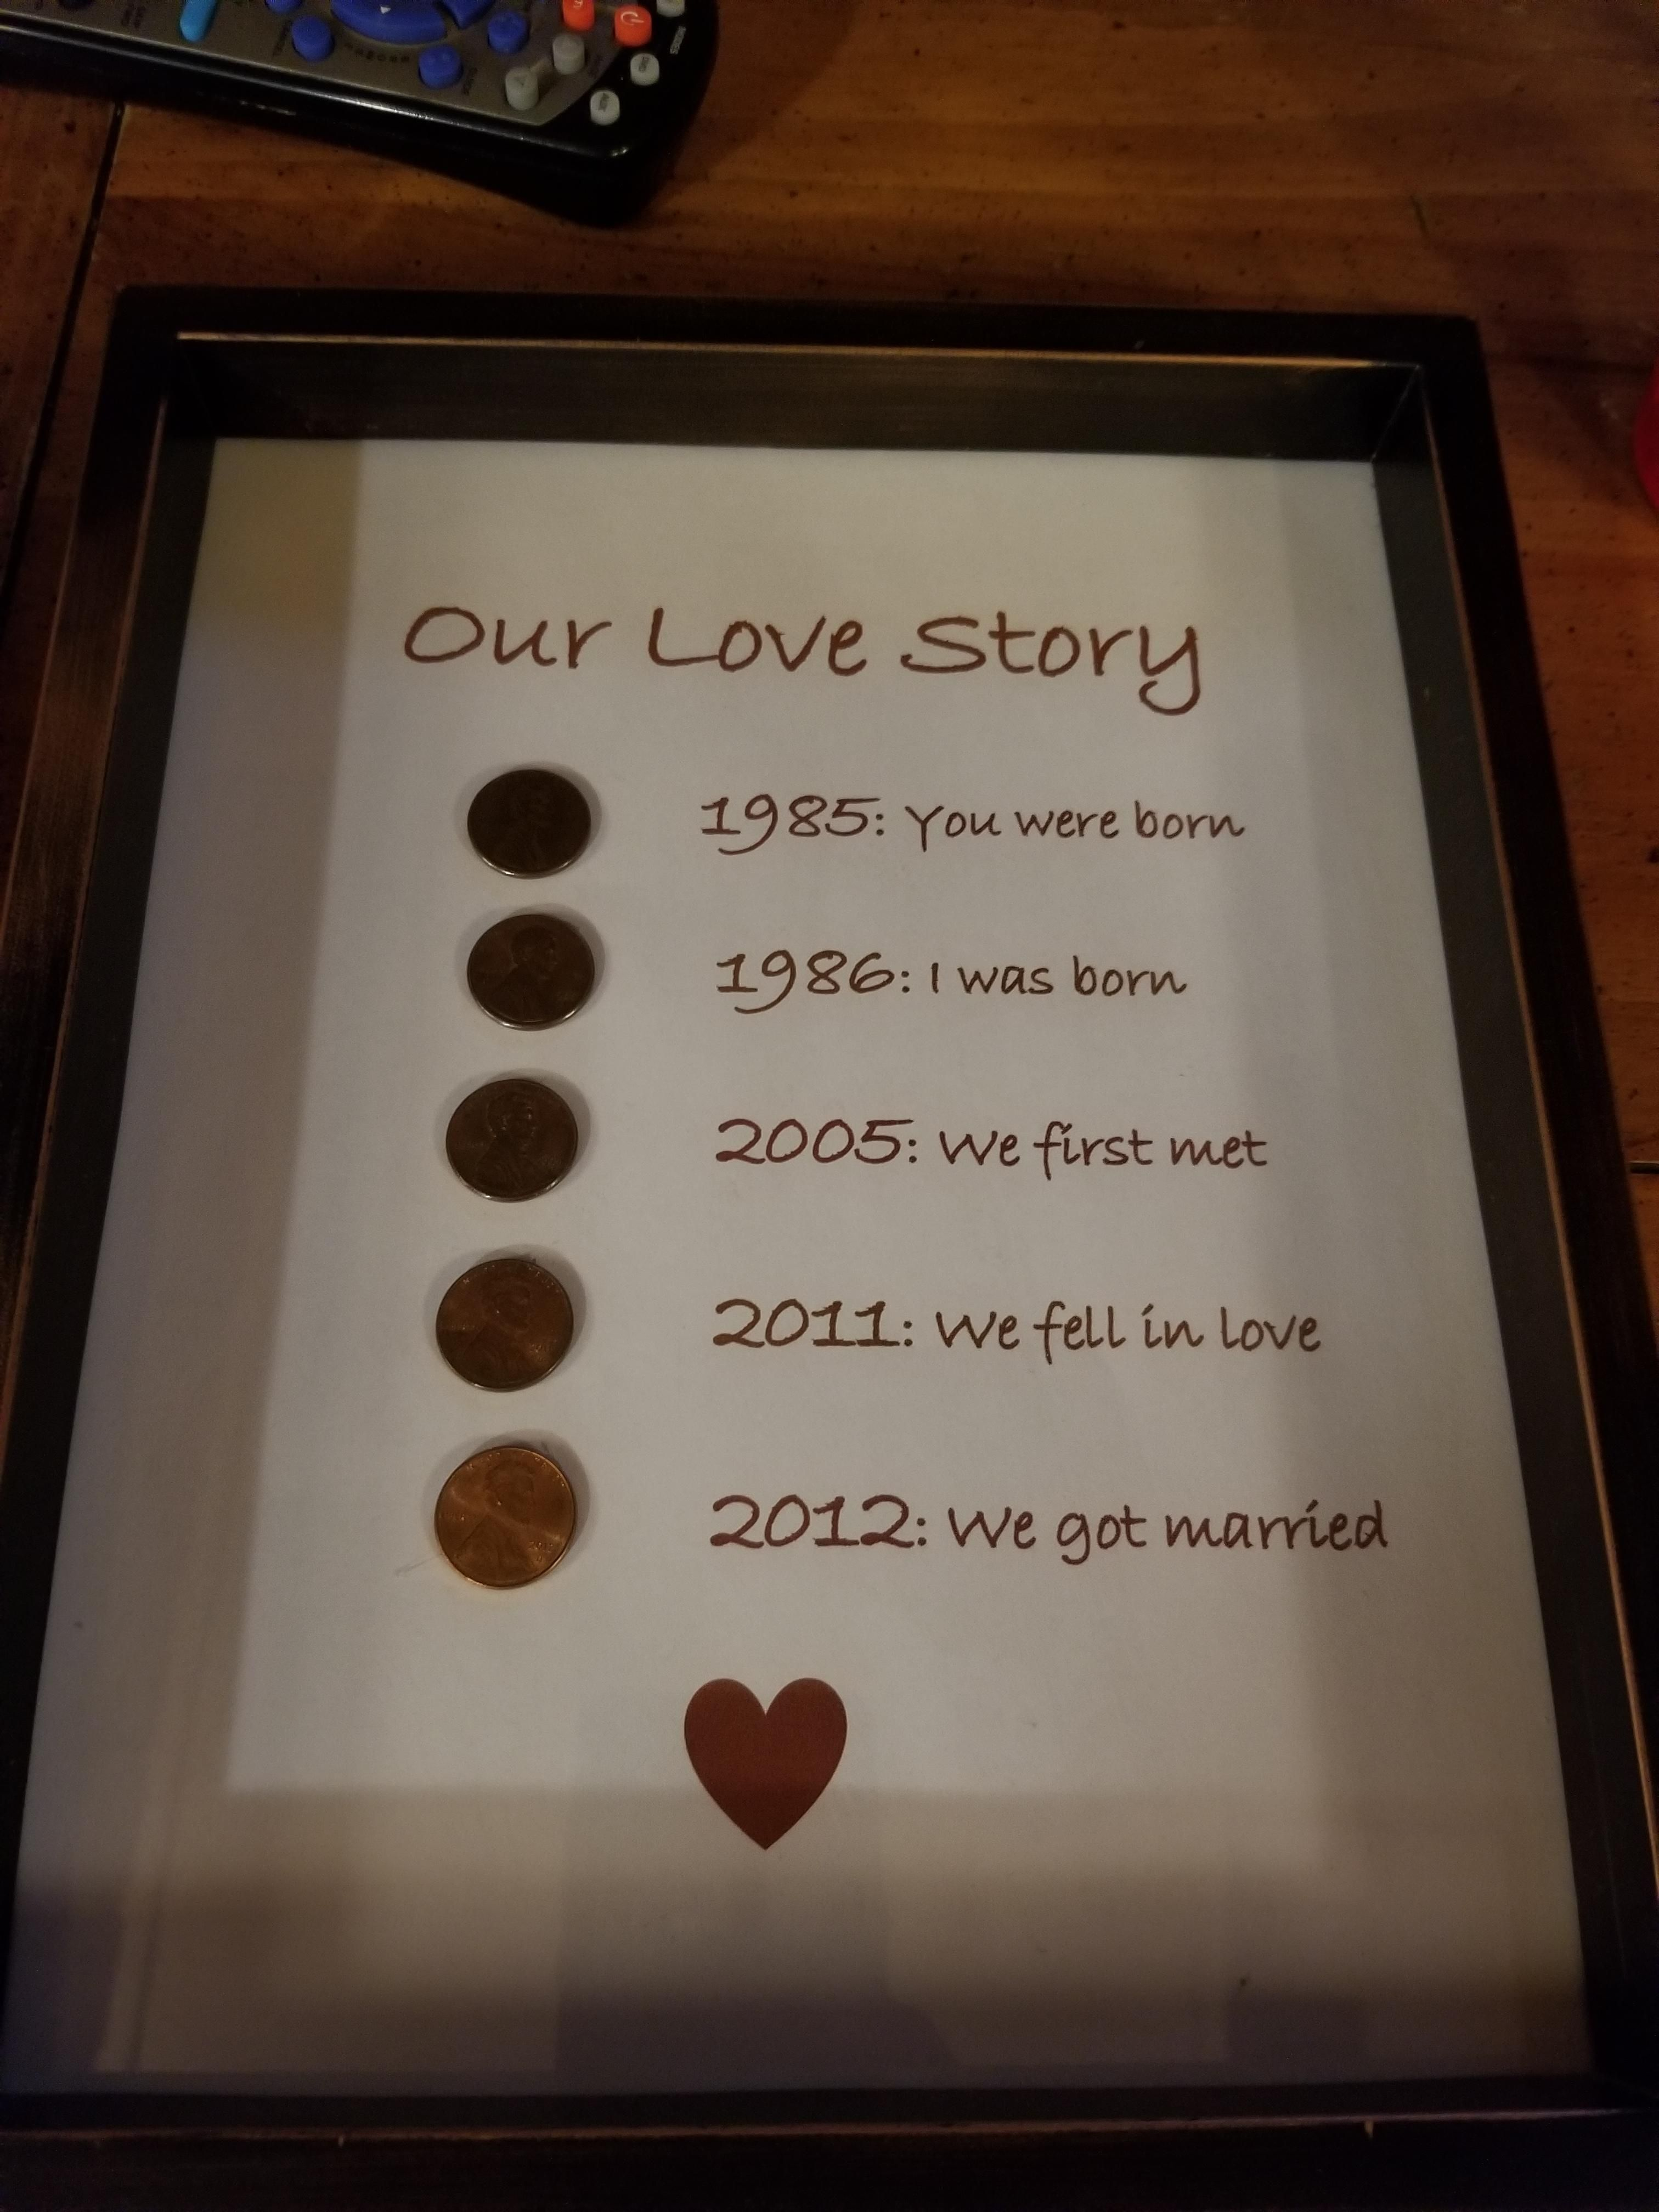 My wife made me this for our anniversary coins we get